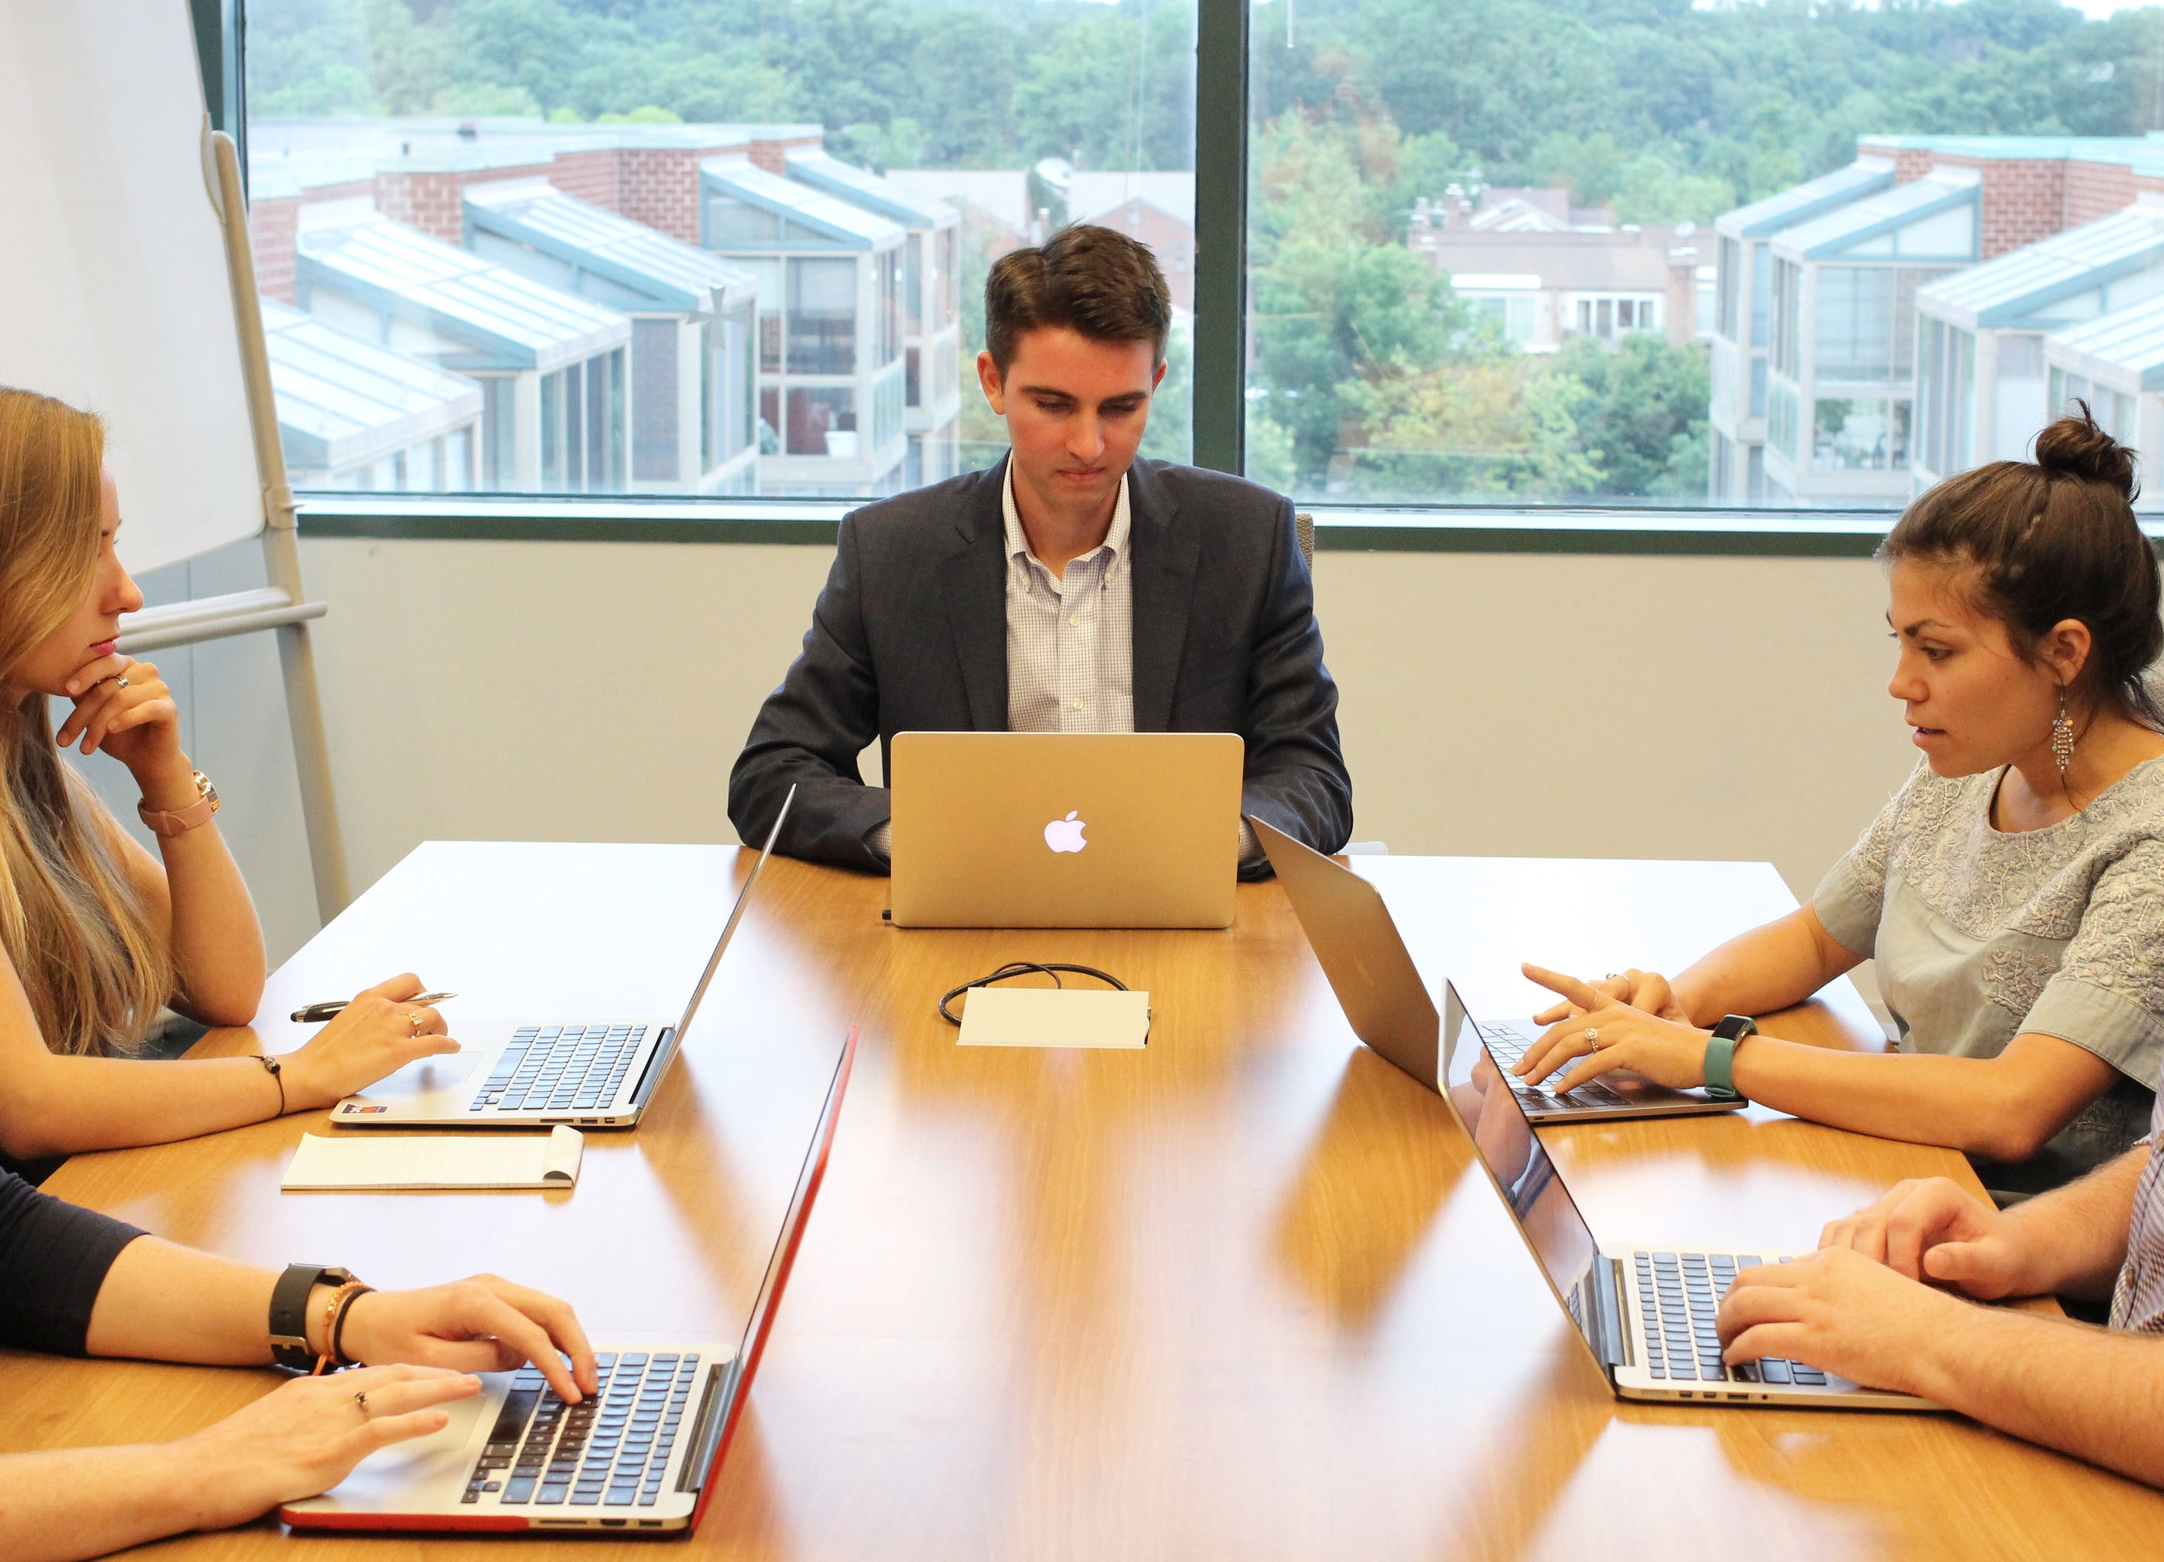 Internships at SV consist of real responsibility & autonomy to turn new ideas for companies & non-profits into reality. Here is Summer 2018 intern Nick Leaver and members of the SV team.